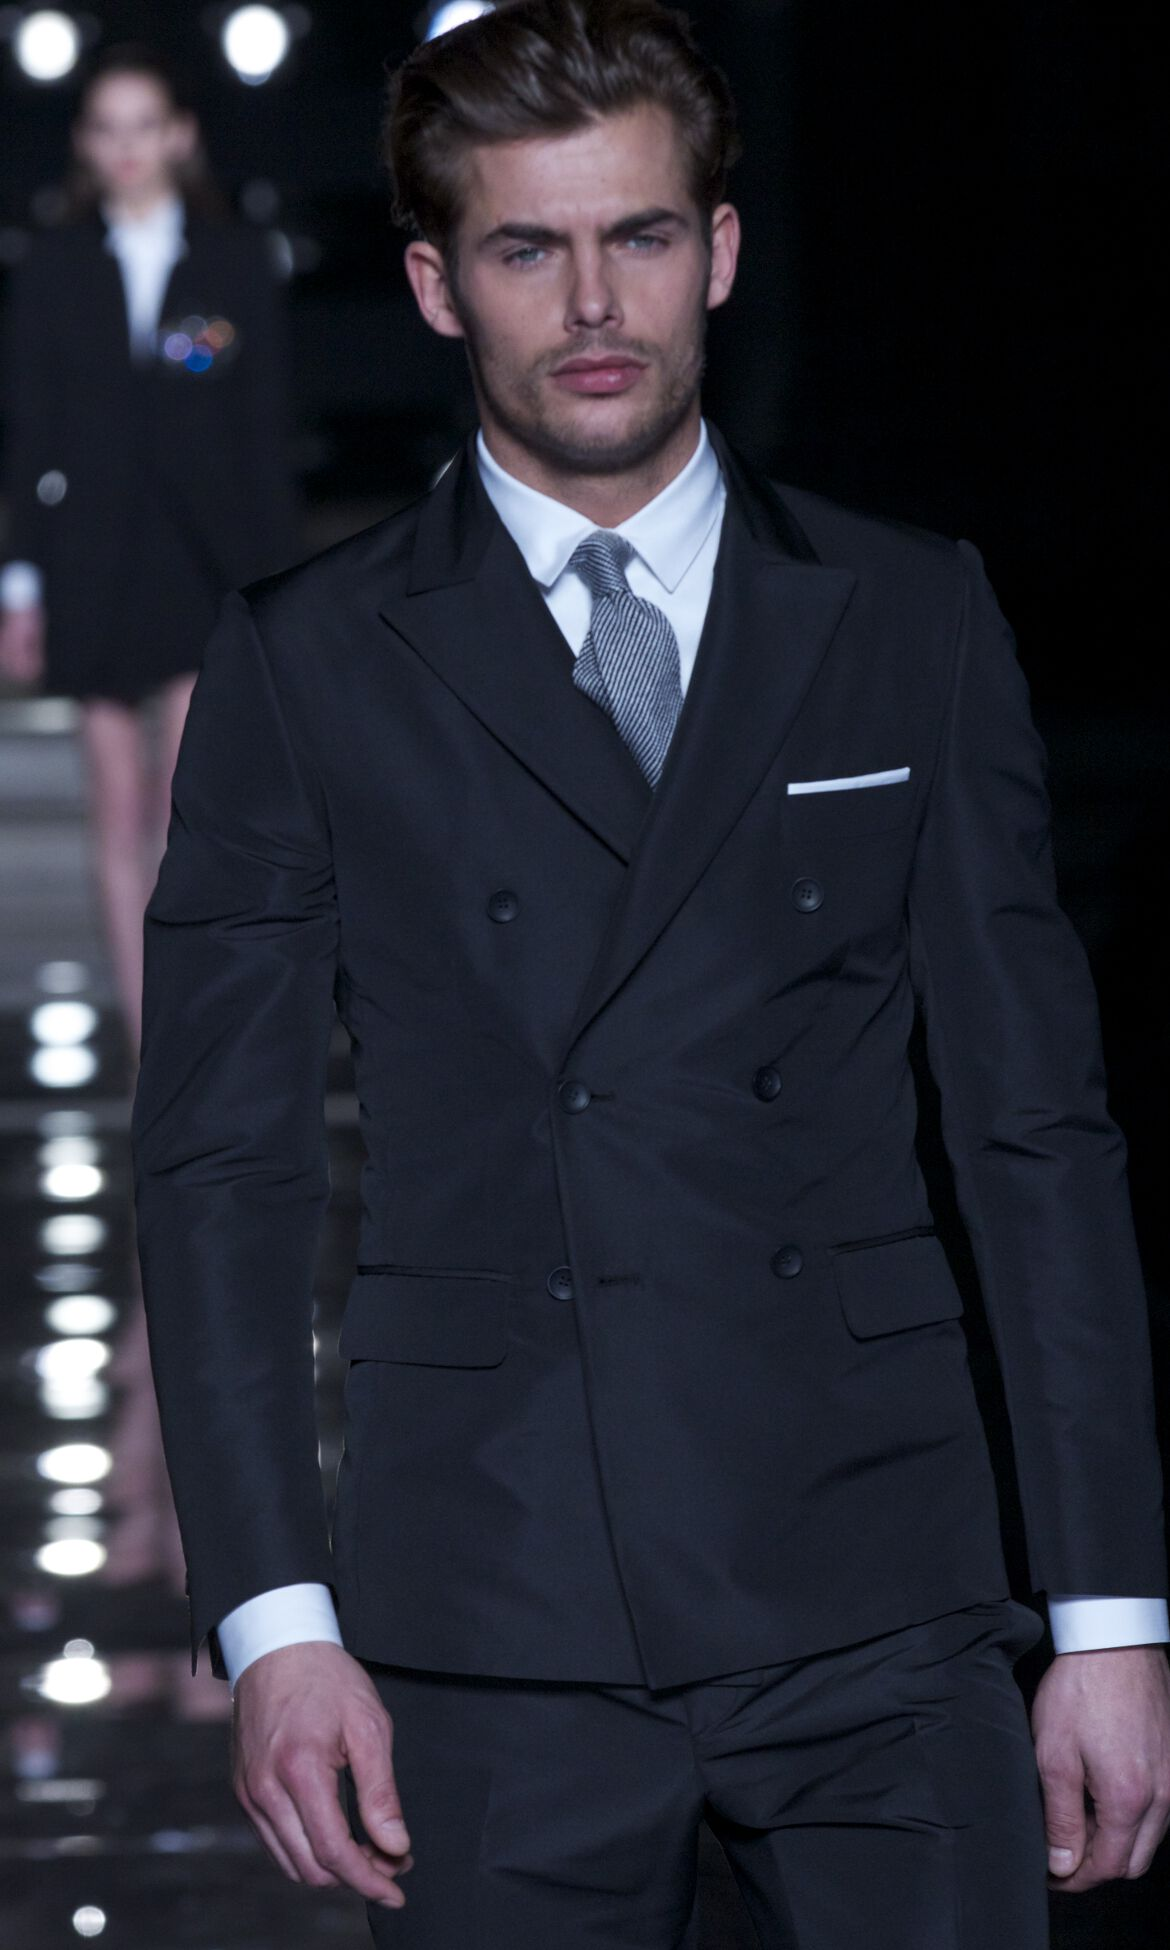 Catwalk Ermanno Scervino Fashion Show Winter 2013 14 Menswear